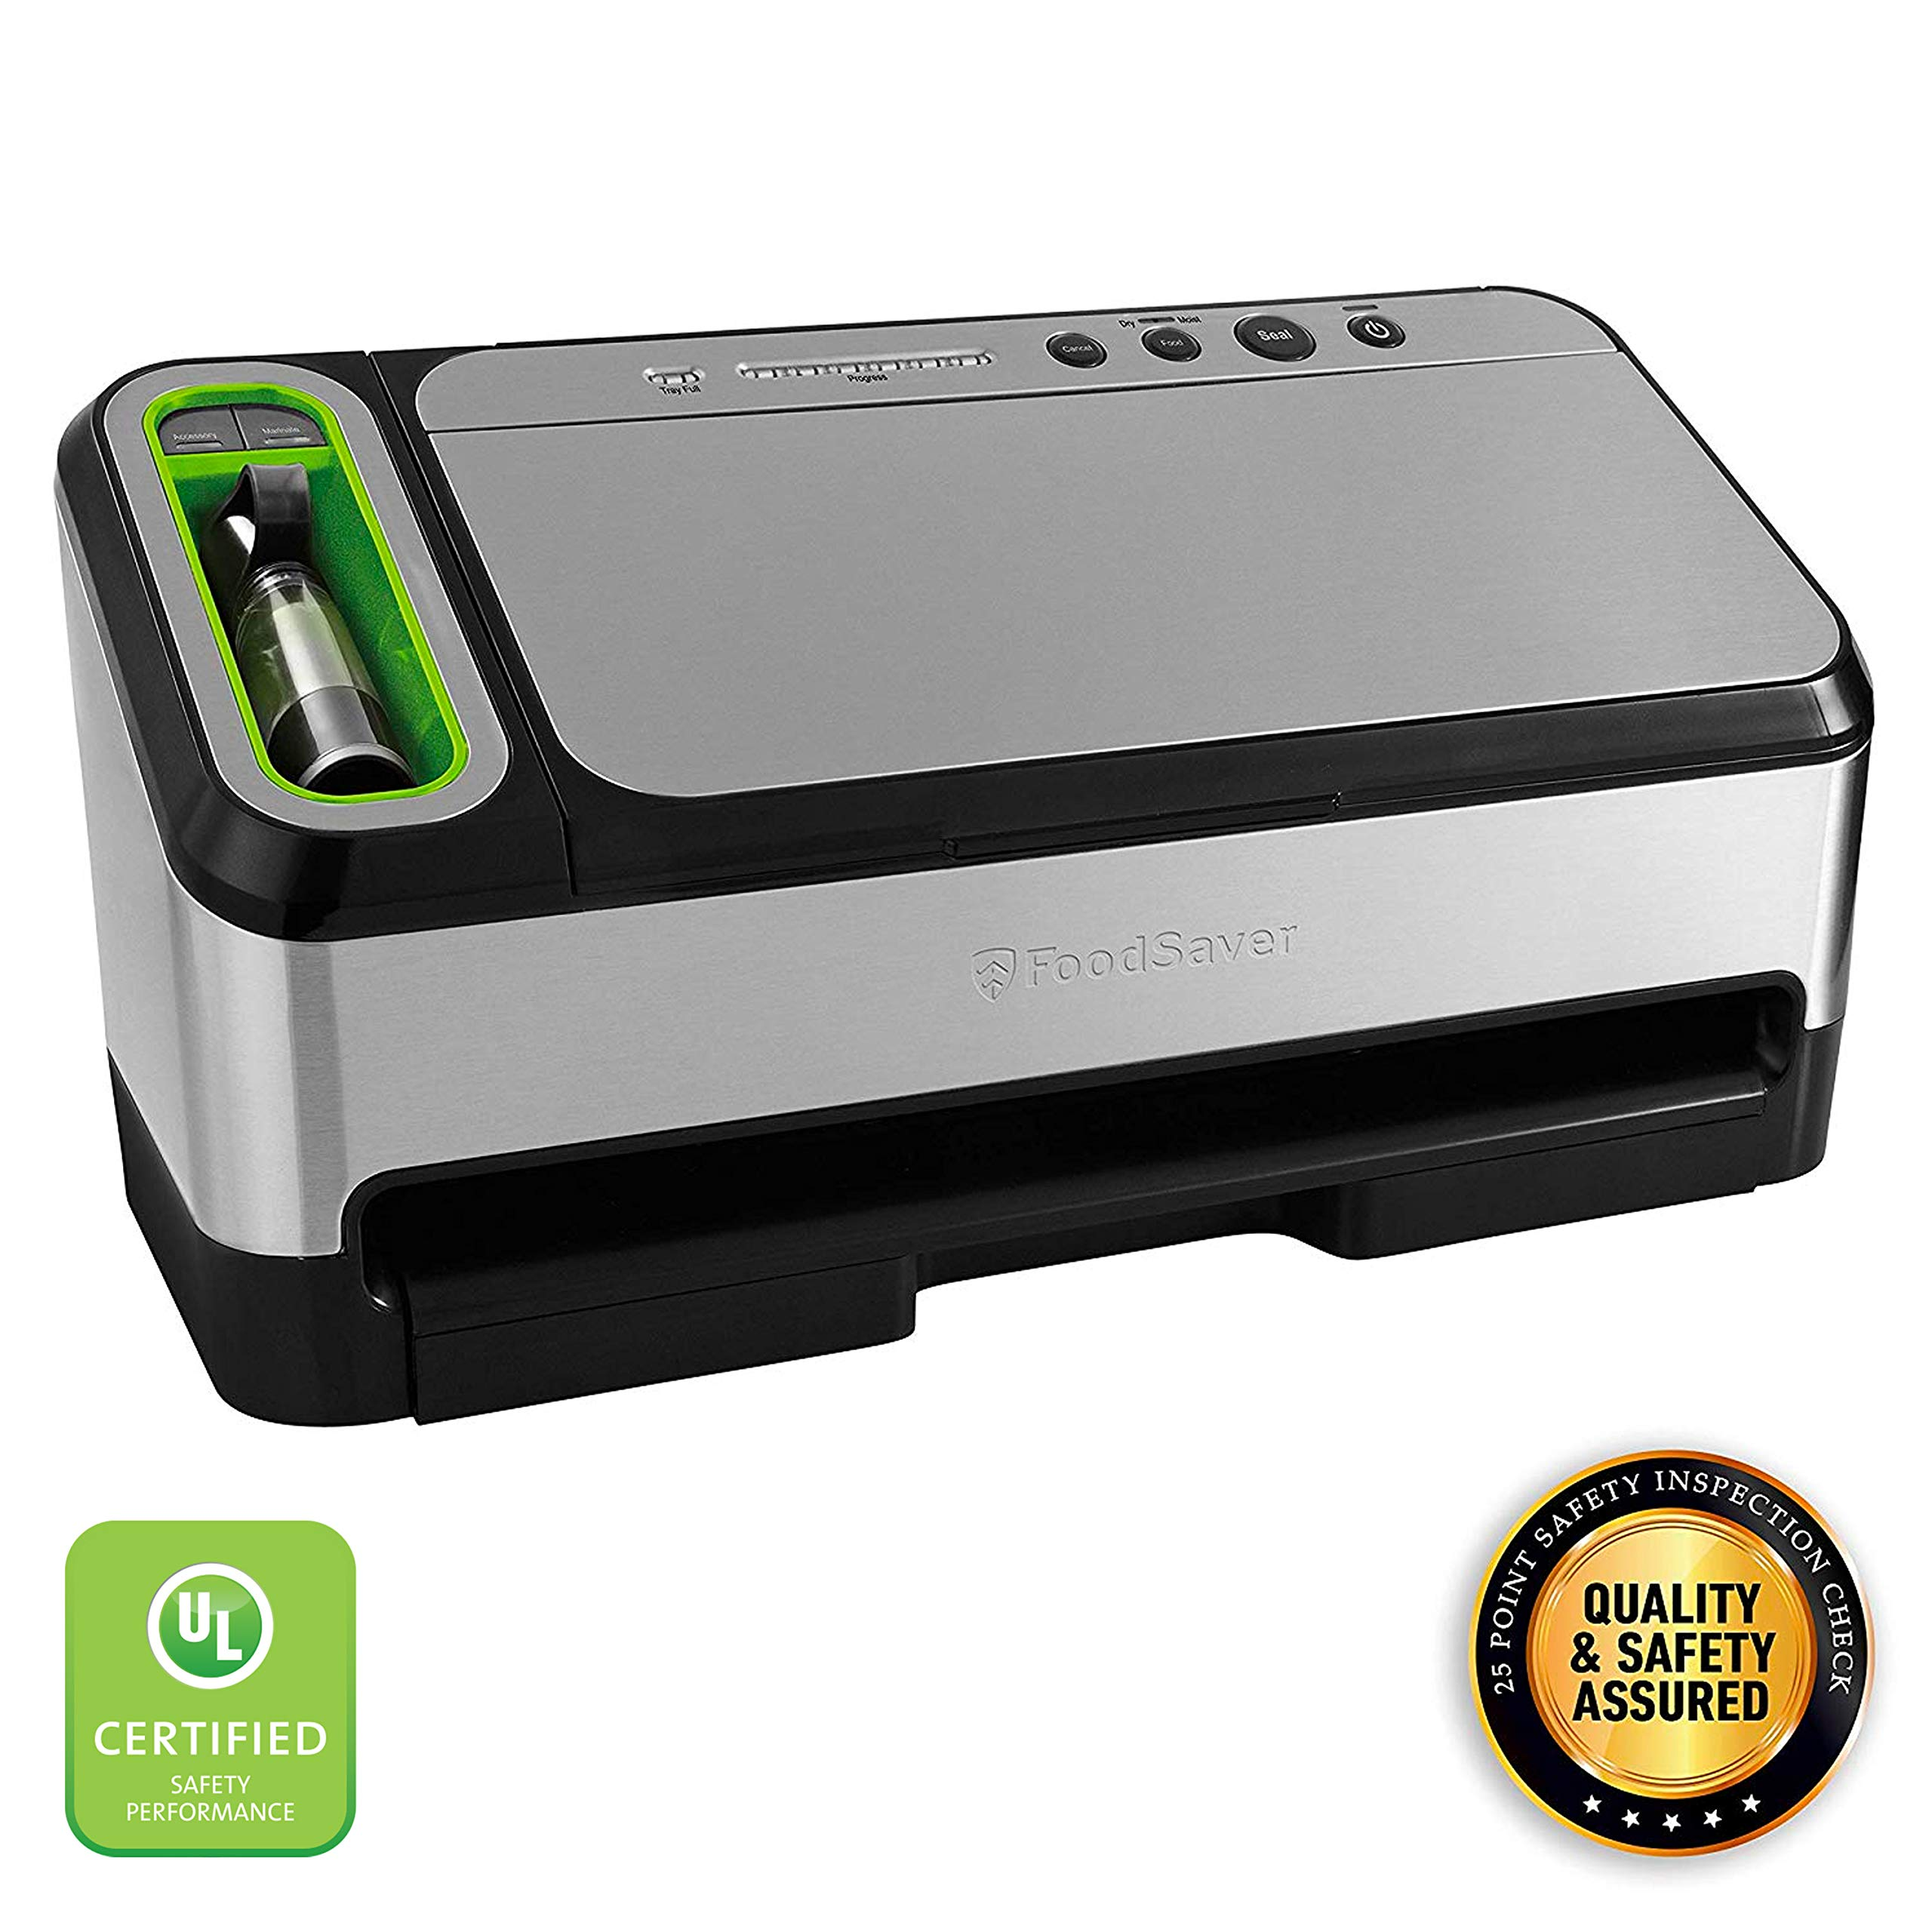 FoodSaver V4840 2-in-1 Vacuum Sealer Machine with Automatic Bag Detection and Starter Kit | Safety Certified | Silver by FoodSaver